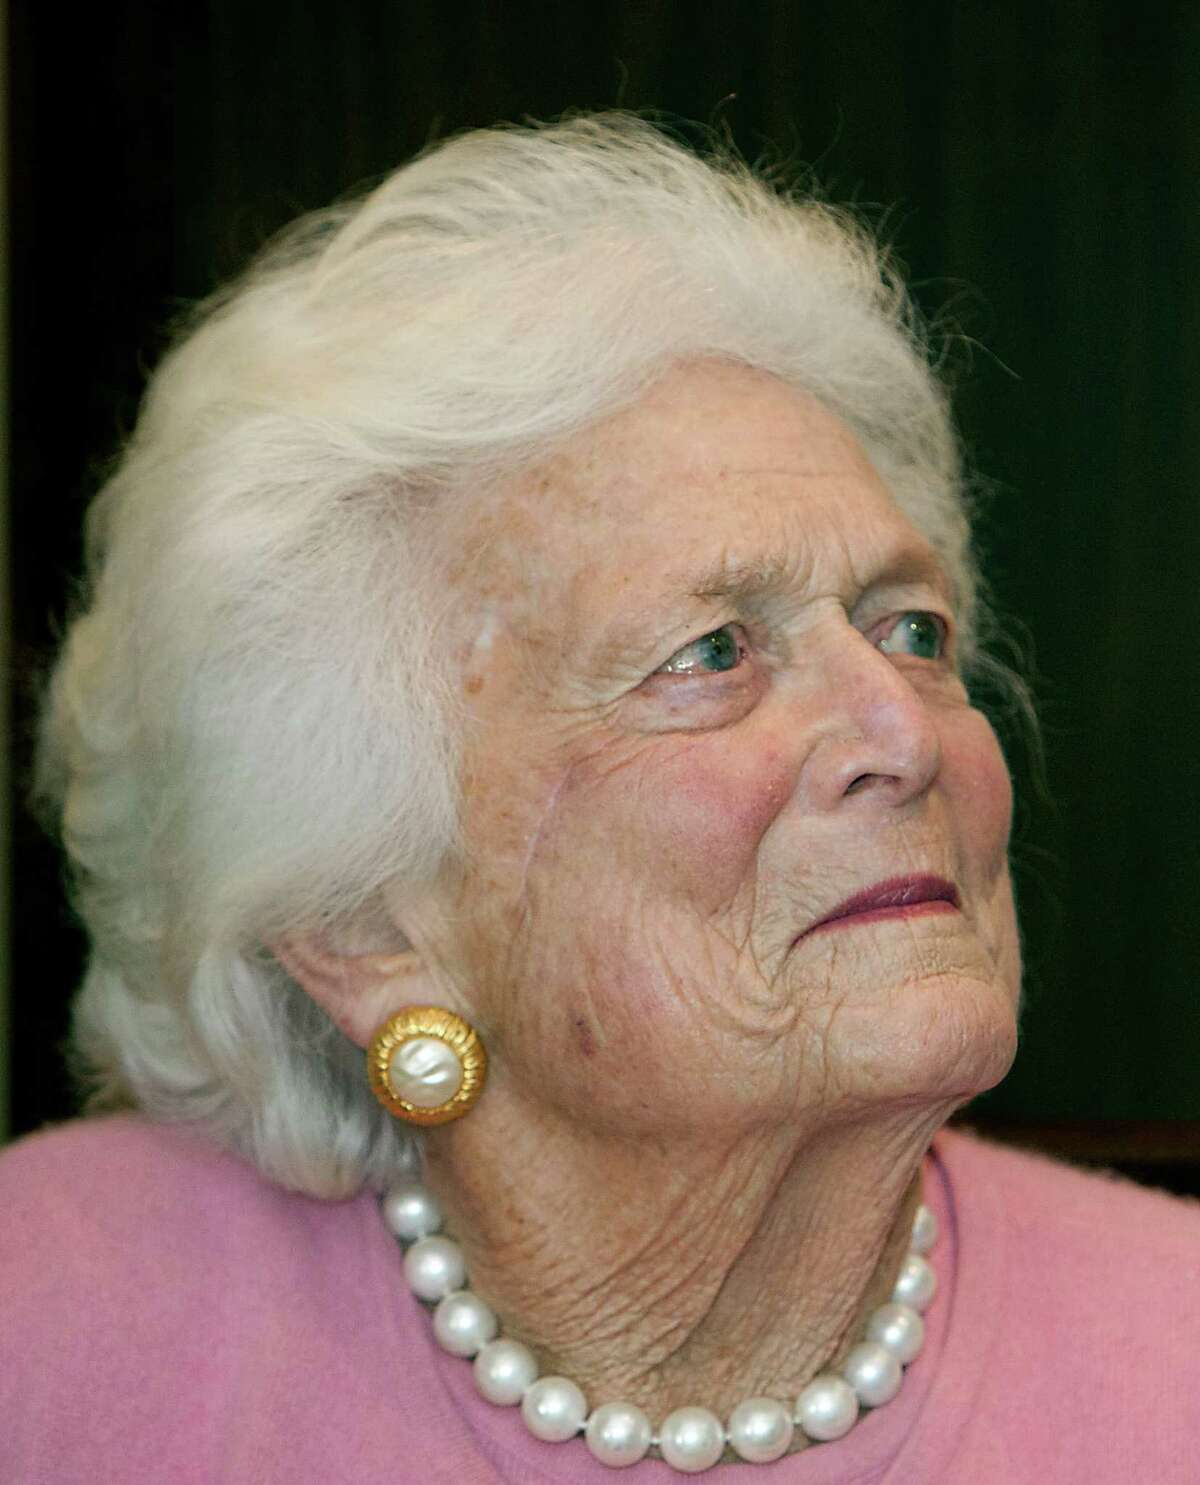 Former First Lady Barbara Bush during a ceremony presenting the 5115th Daily Point of Light (DPOL) Award to Jim McIngvale at President Bush's office Monday, Dec. 23, 2013, in Houston. ( James Nielsen / Houston Chronicle )